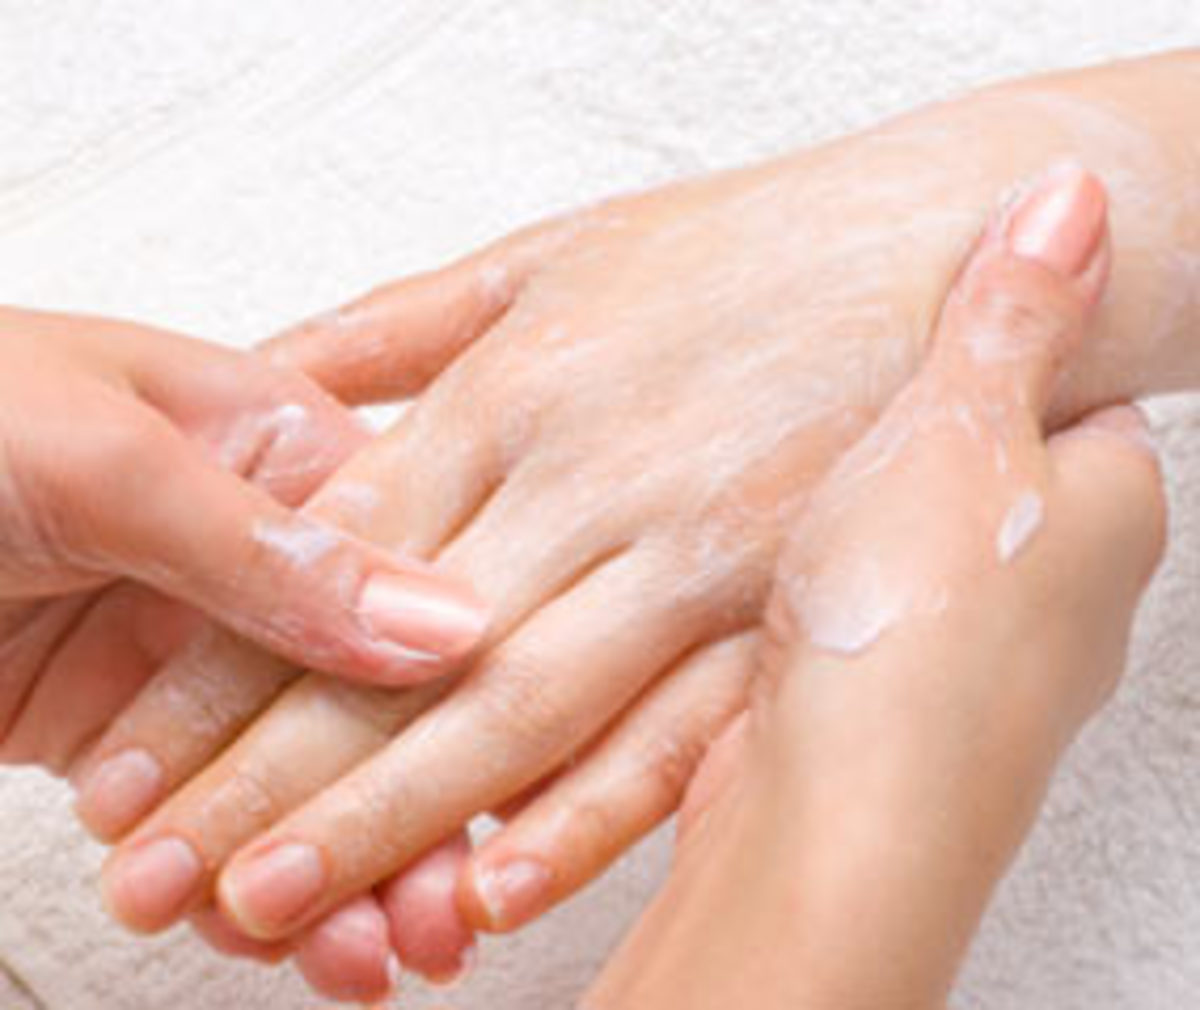 Manicure and pedicure massage sequence on easy to follow steps.